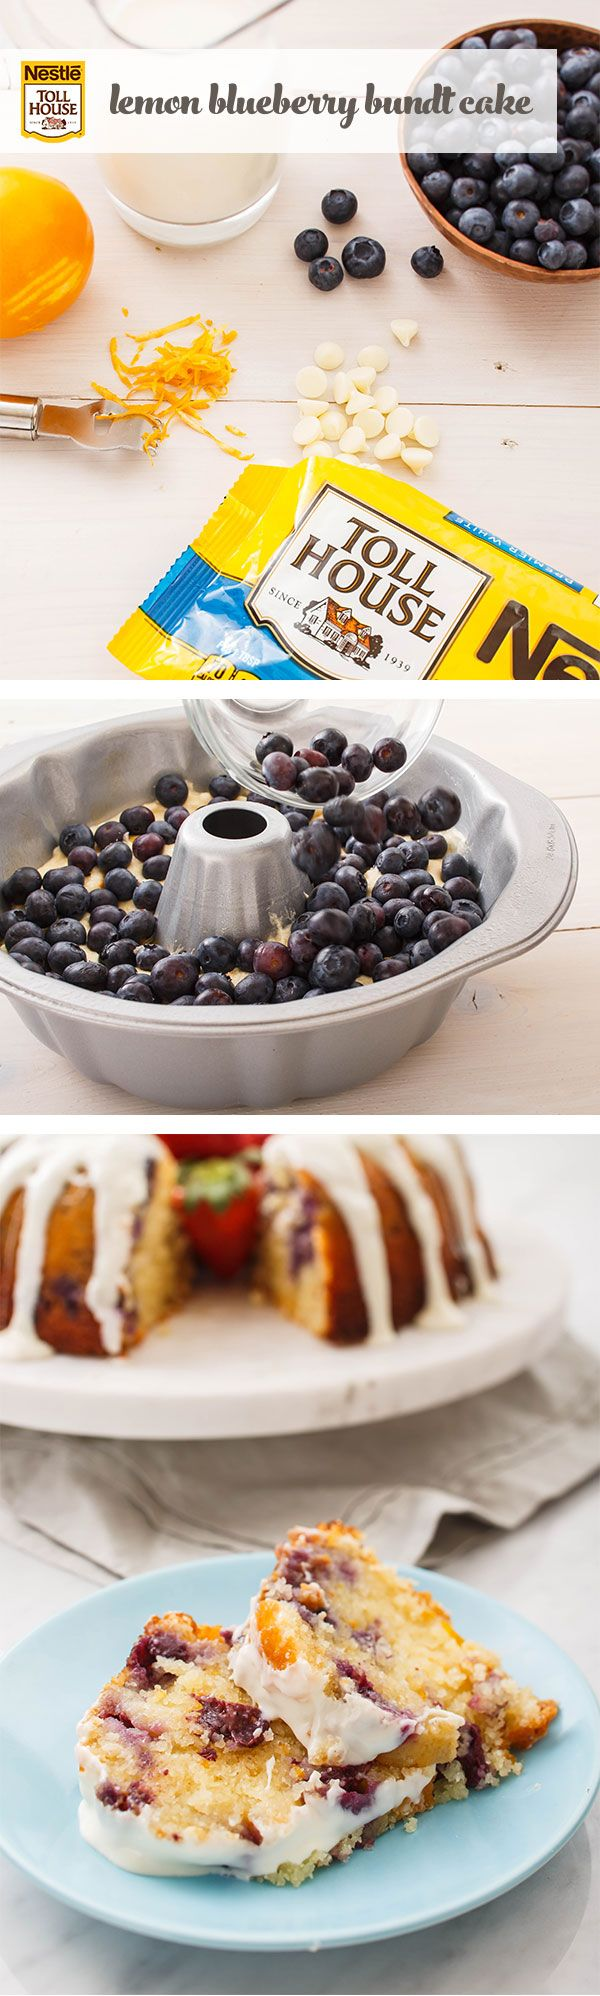 Serve up some spring-inspired flavors in this Lemon Blueberry Bundt Cake. To make this recipe, melt Nestle Toll House Premier White Morsels and combine with other ingredients—vanilla extract, buttermilk, grated lemon peel—and pour half of the batter into a prepared pan. Sprinkle in blueberries, then pour the remaining batter and bake. Once cool, drizzle with glaze for a tasty masterpiece that's sure to brighten days with fun, springtime flavors.